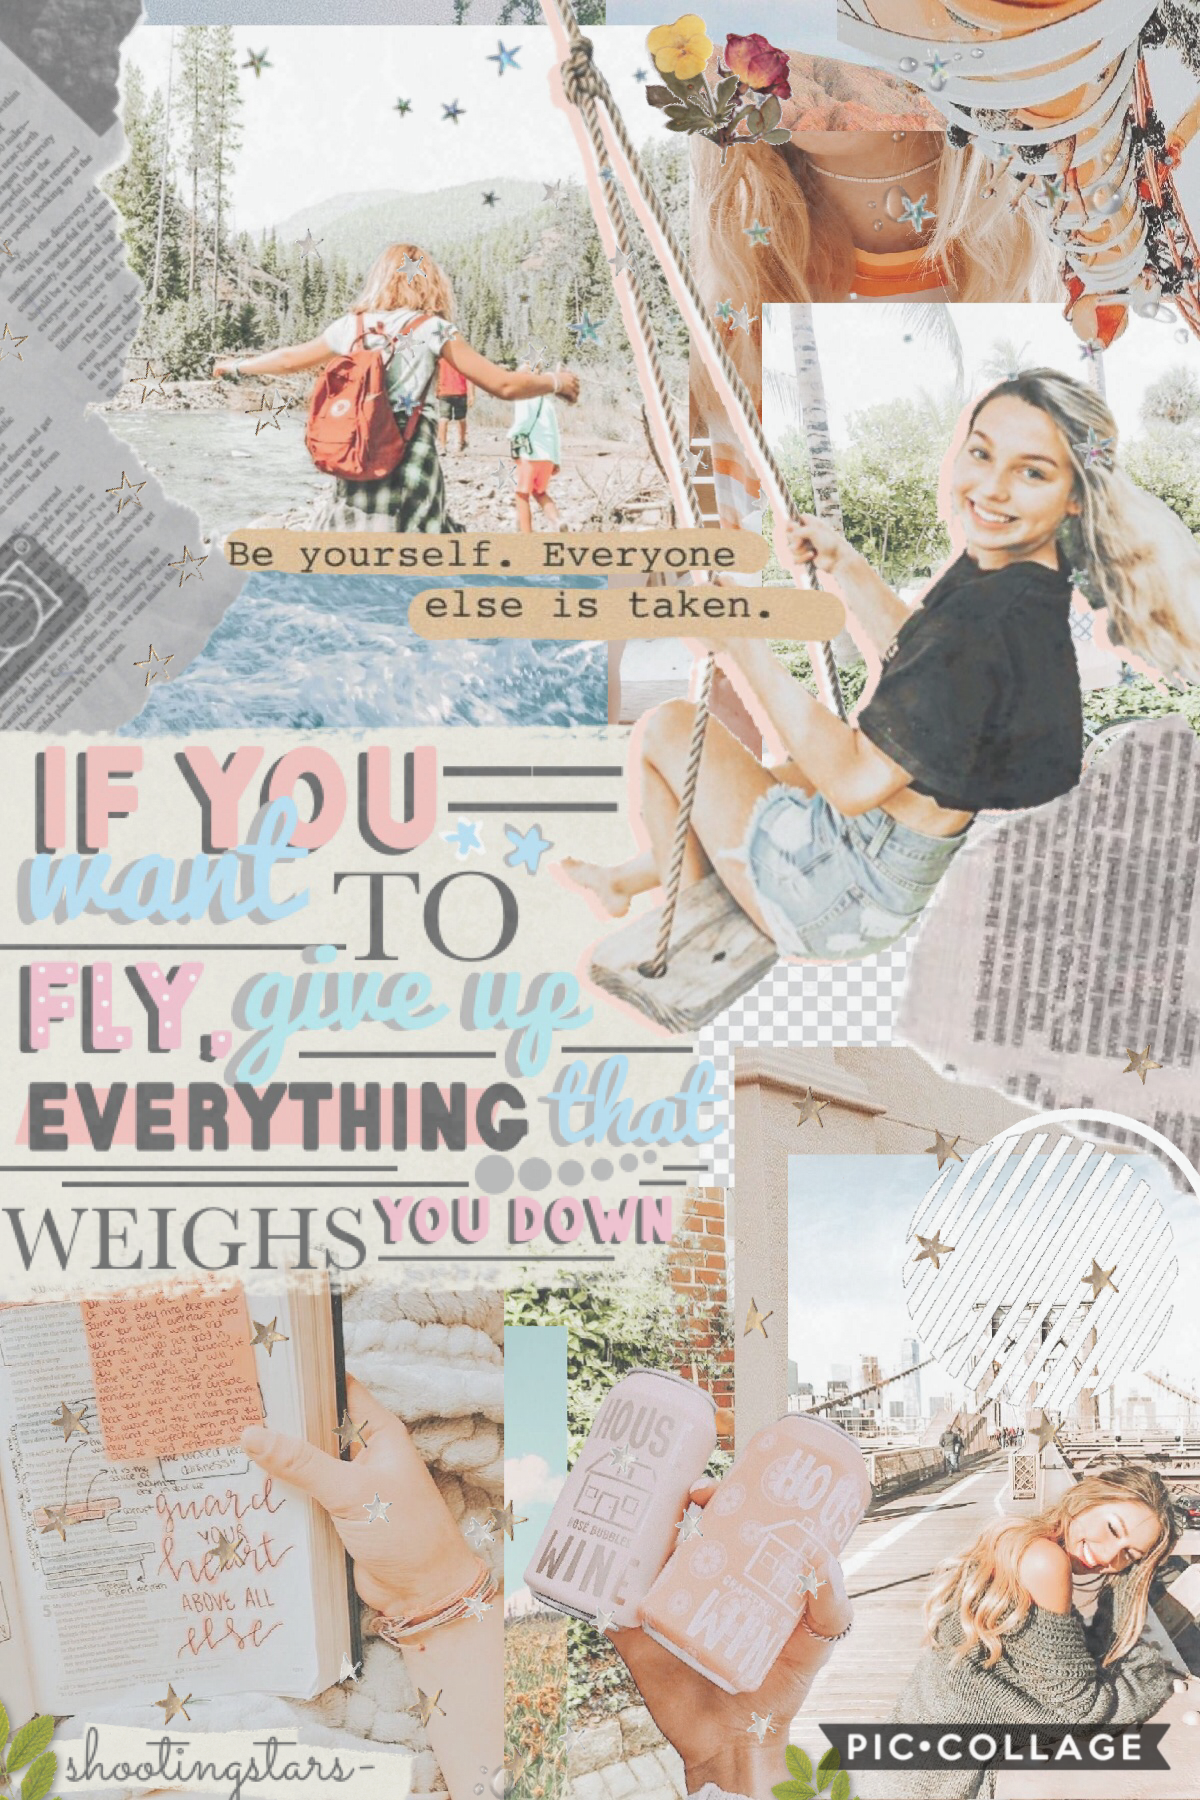 first collage in a while 💗🌸 i'm trying to make a travel bucket list, so does anyone have any country suggestions? 🦋🌊☁️ i'm thinking about either italy or australia 🌻💫🌙 how is everyone doing? 🌺🍓🌿